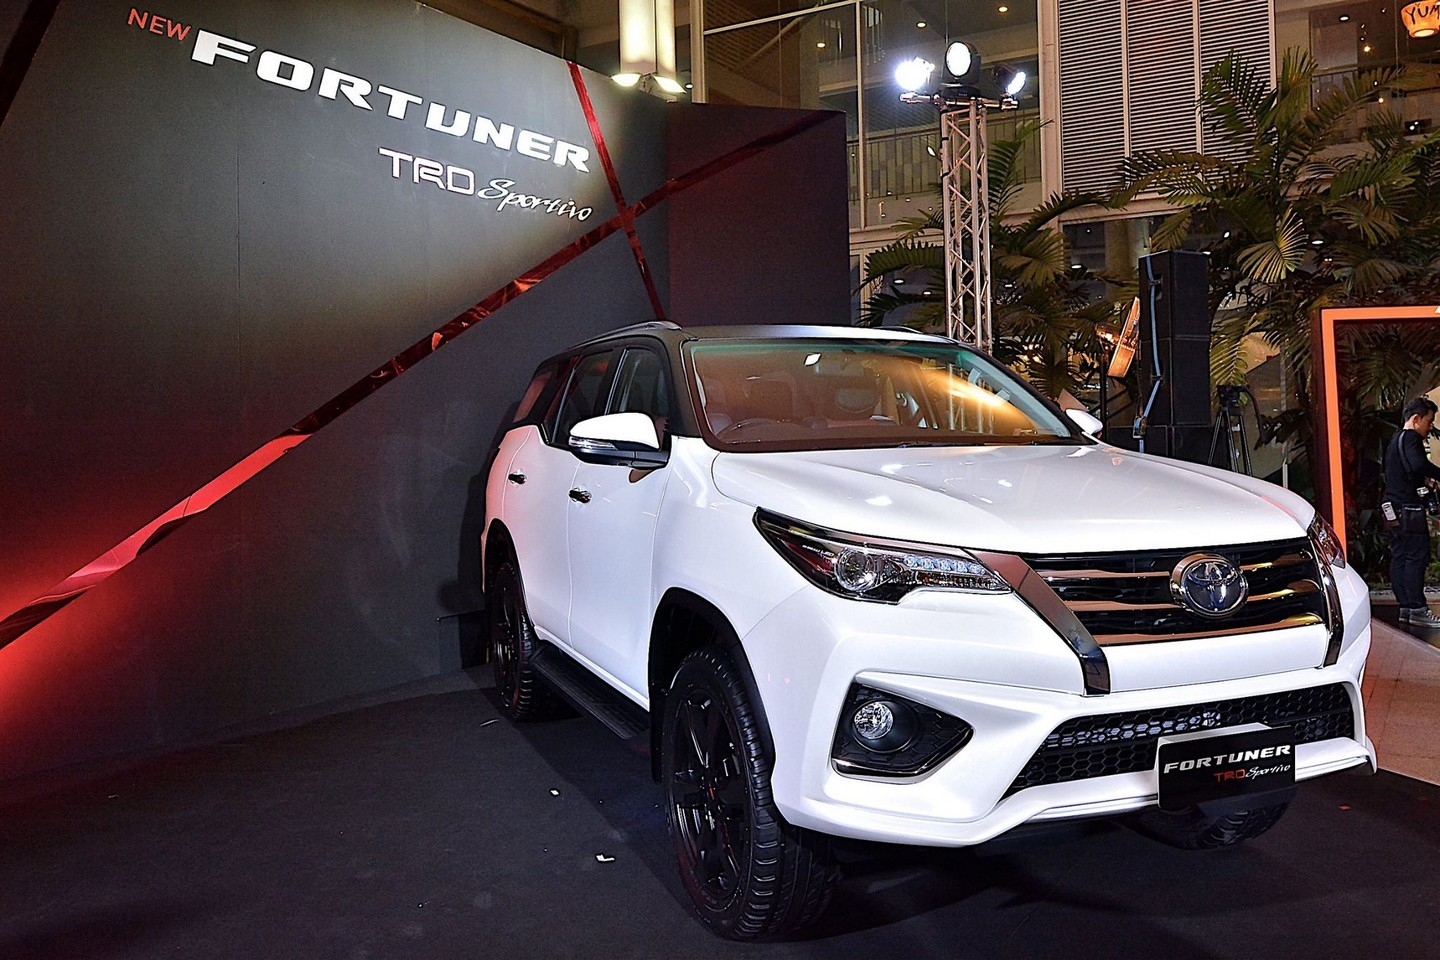 2017 Tacoma Trd Sport Price >> New Toyota Fortuner TRD Sportivo Is a Hilux SUV with Attitude - autoevolution